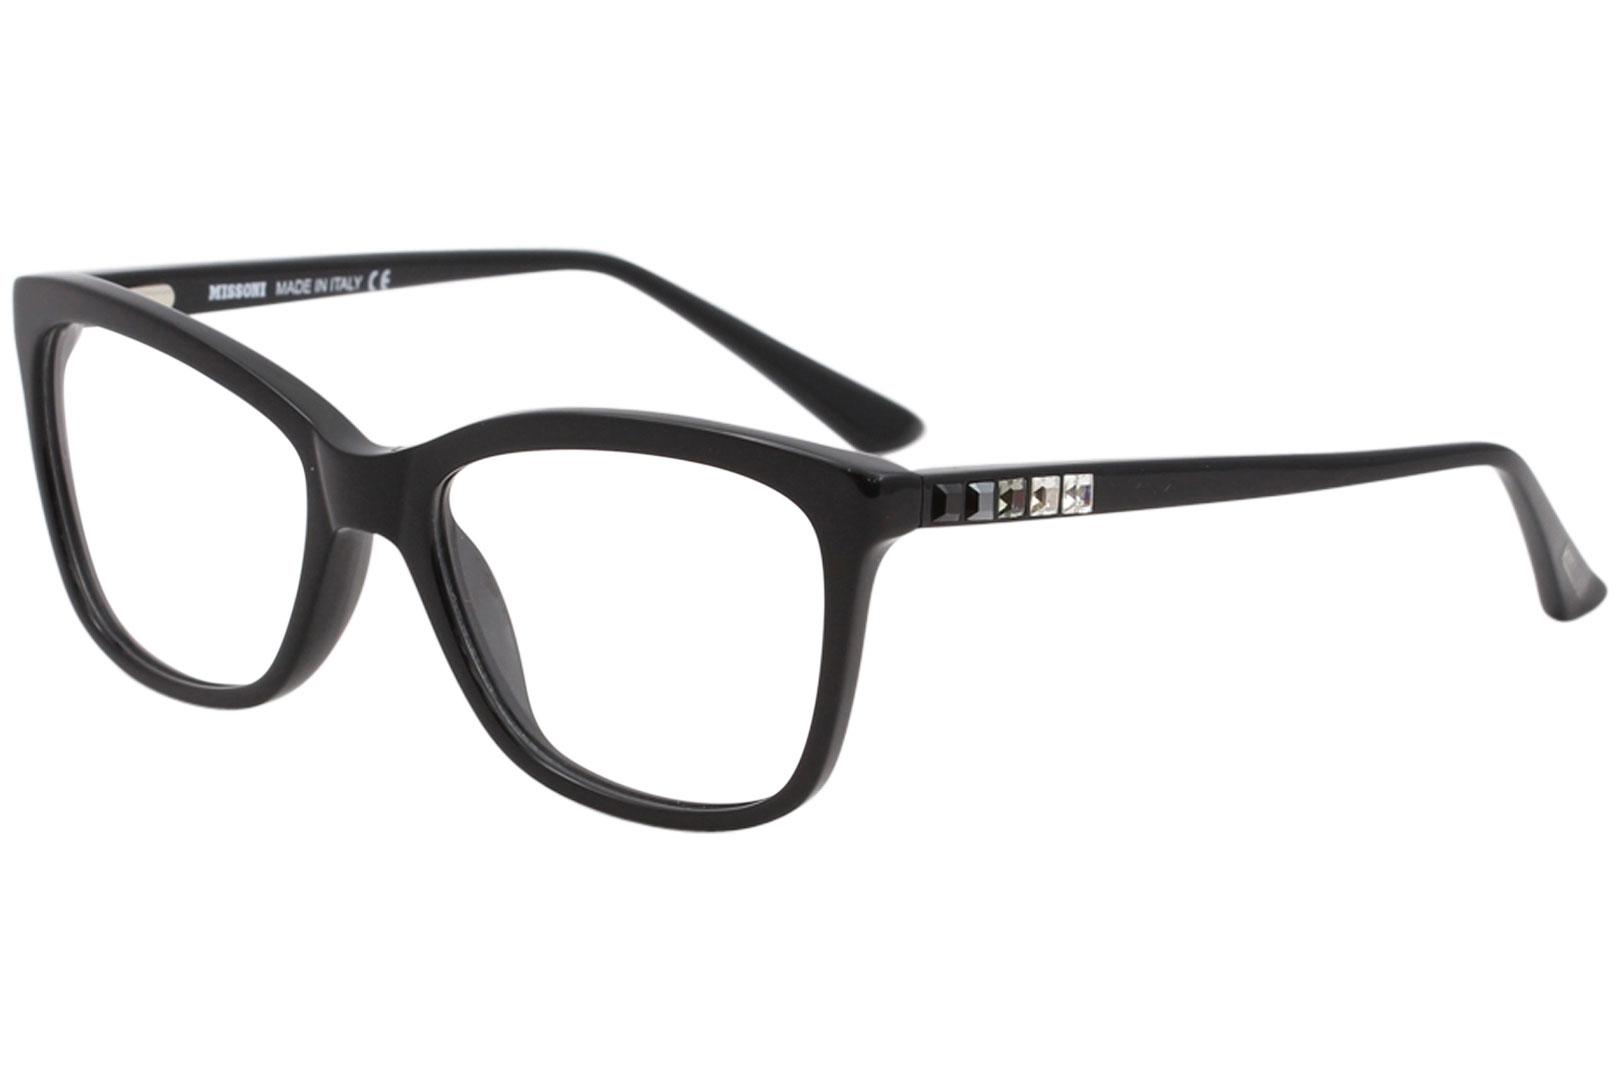 Image of Missoni Women's Eyeglasses MI289V MI/289/V Full Rim Optical Frame - Black - Lens 54 Bridge 17 Temple 135mm